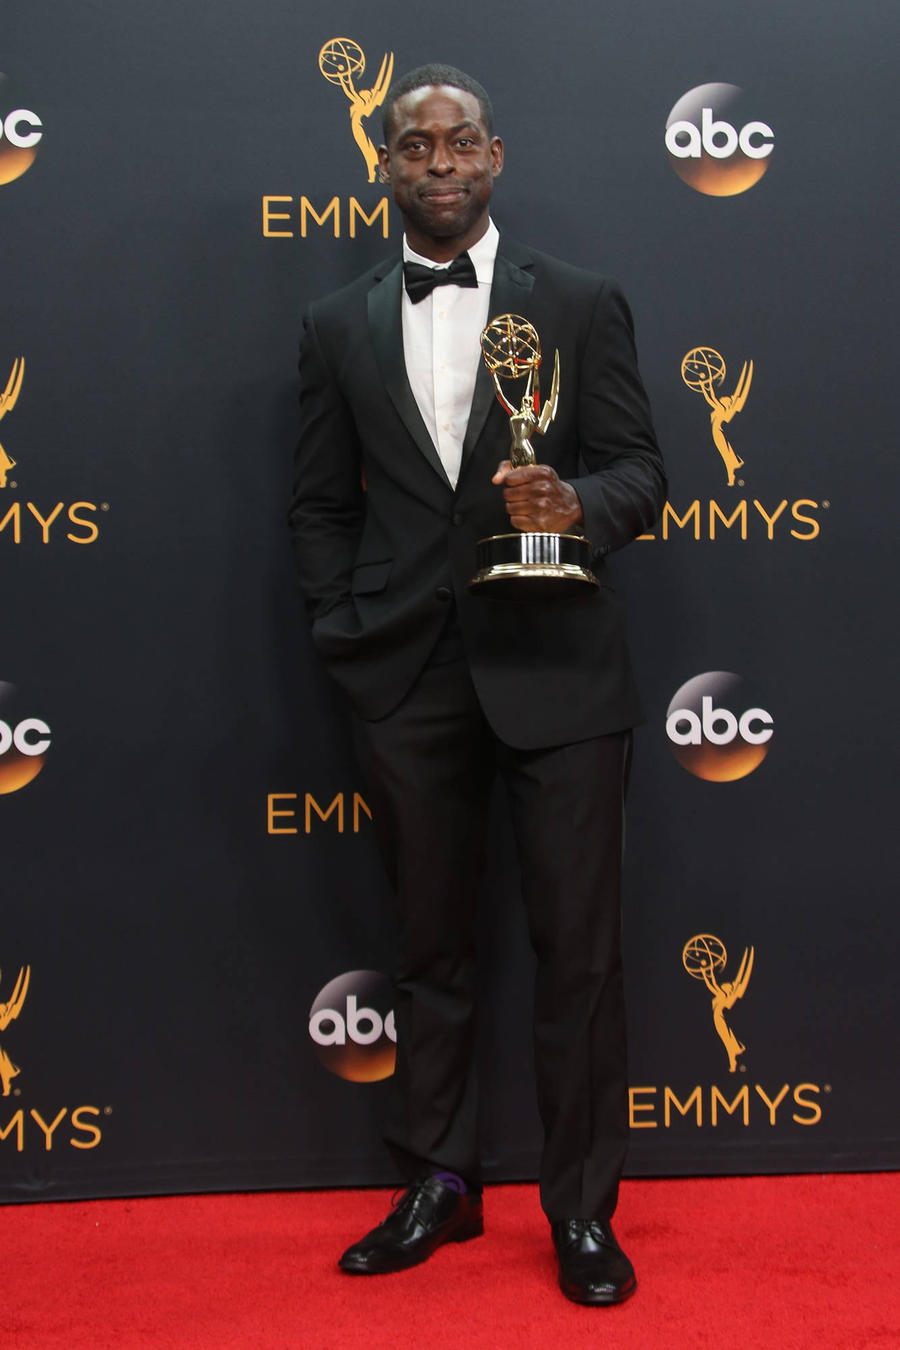 O.j. Simpson Attorney Christopher Darden Glad Sterling K. Brown Won Emmy